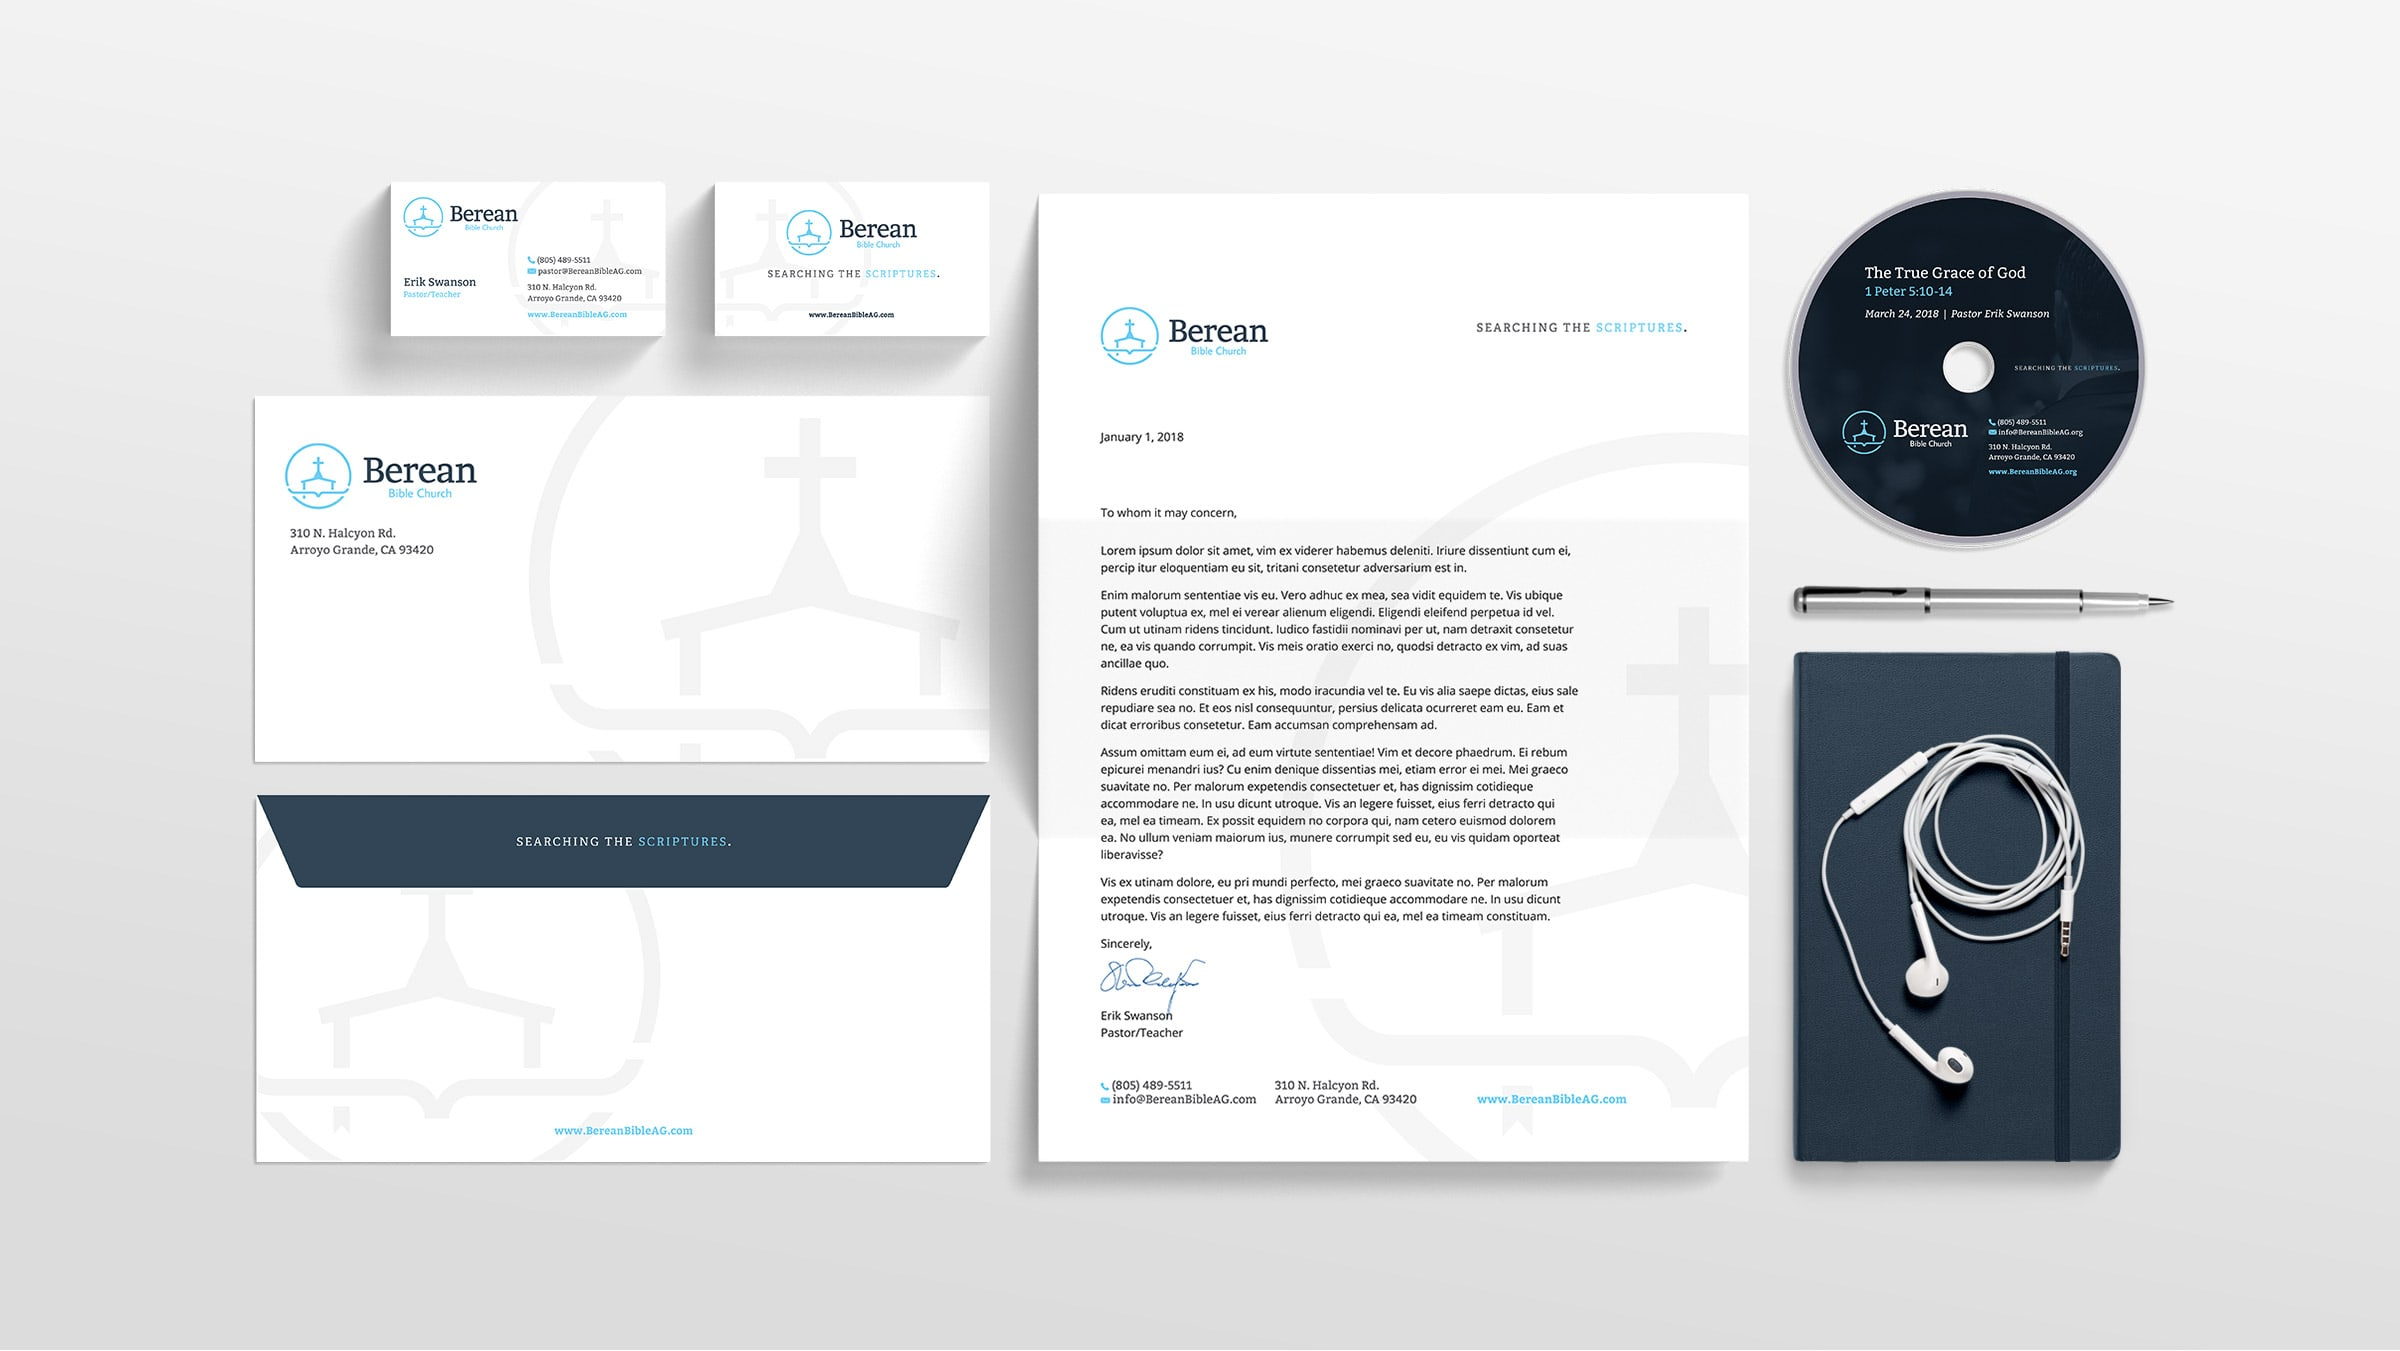 3 - Berean Rebrand, stationary